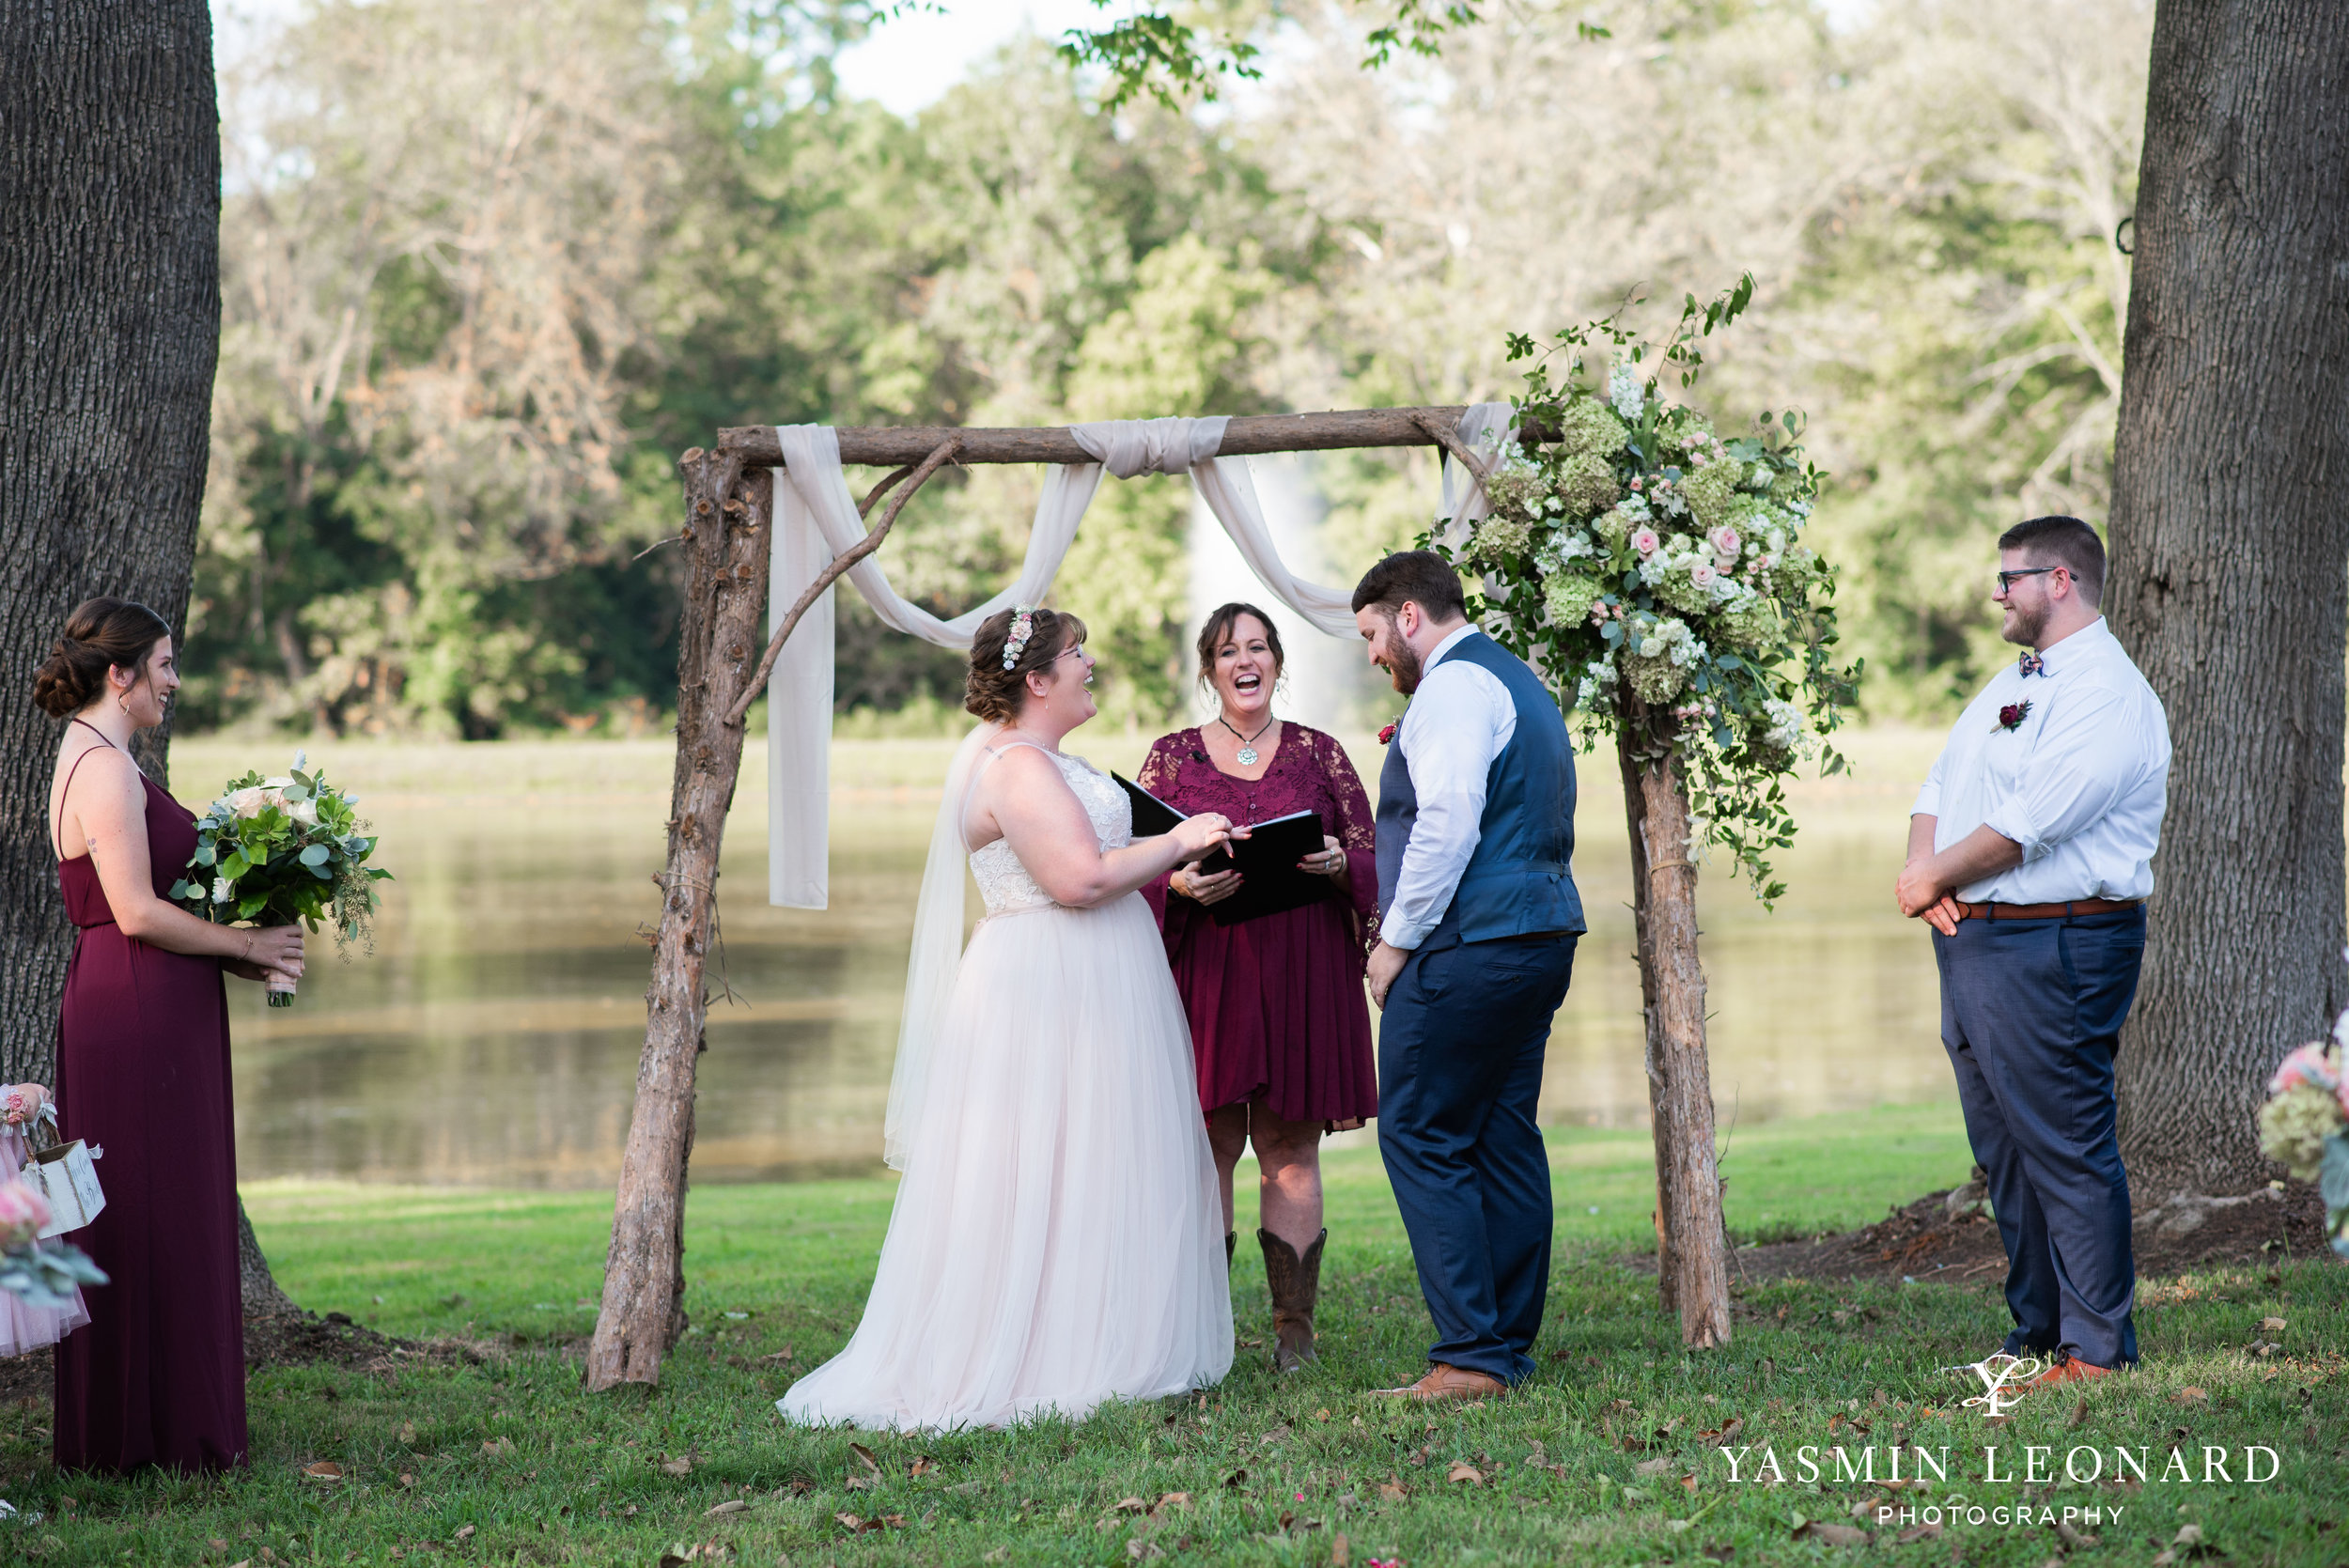 Hannah and David - l'abri at Linwood - NC Barn Weddings - Guys and Girls on Bride's Side - How to incorporate guys with bridesmaids - navy fall wedding - high point photographer - nc wedding venues - triad weddings-28.jpg